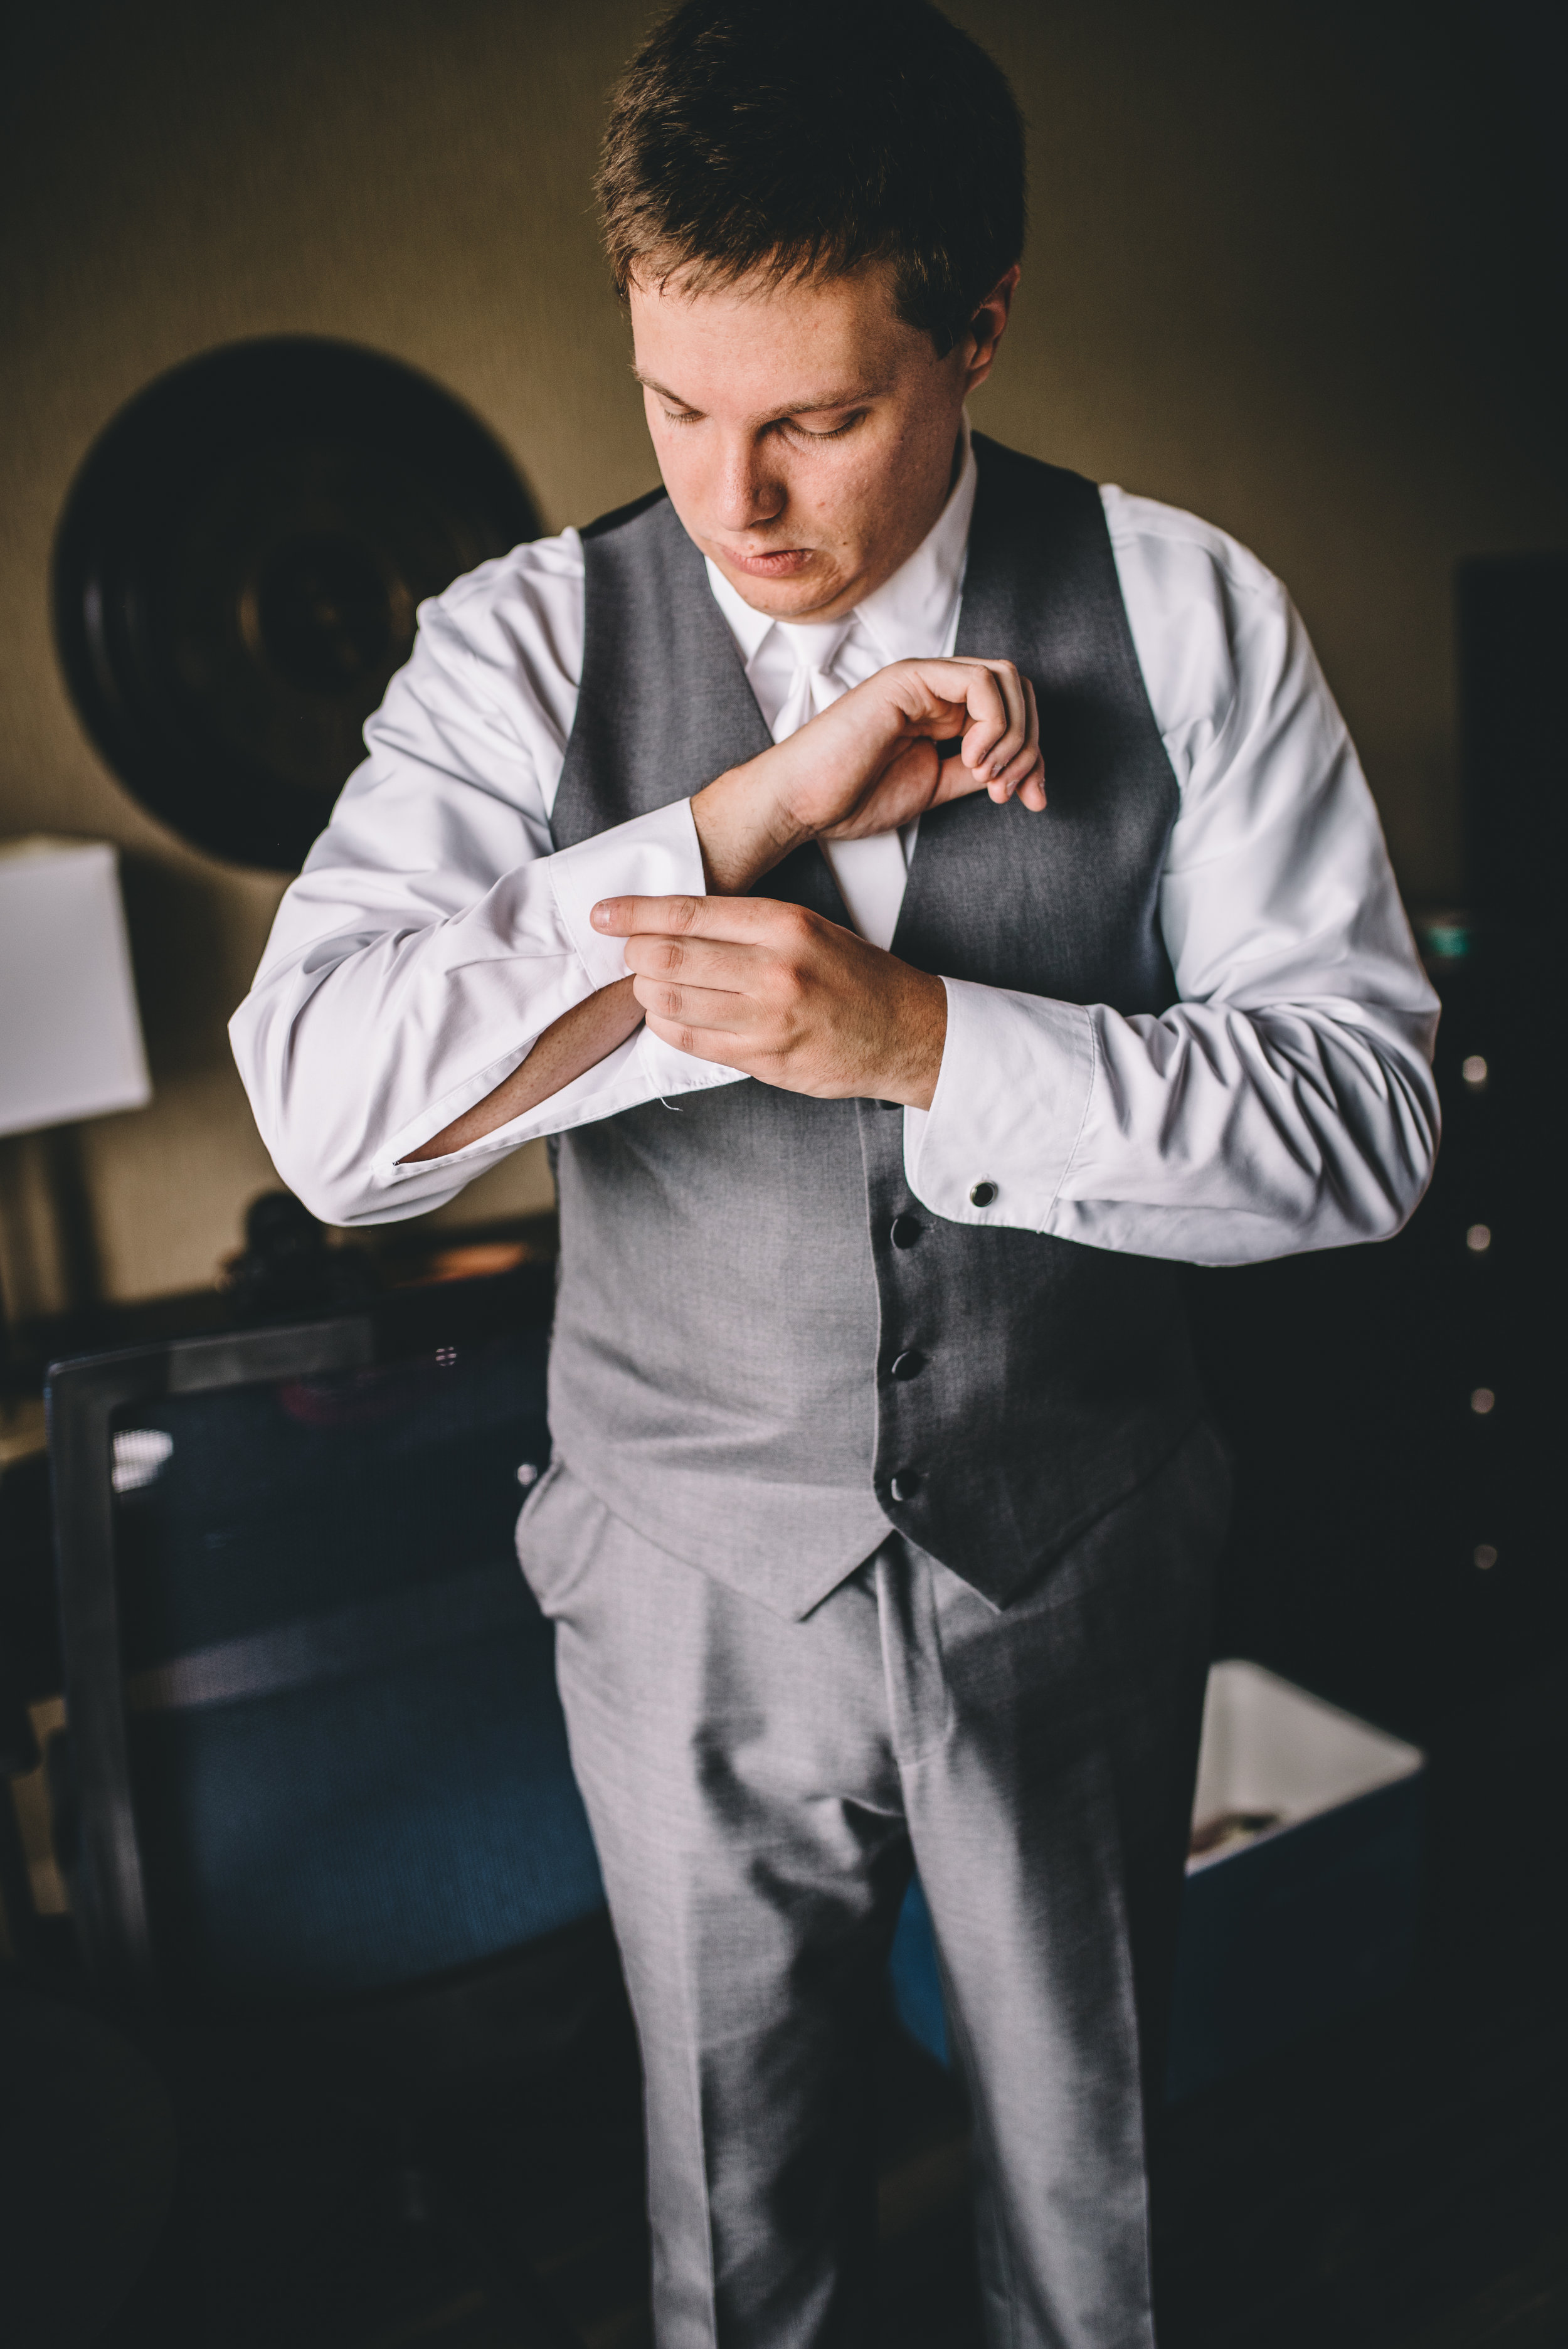 Groom Getting Ready 6 Mocha Tree Studios Ottawa Wedding and Engagement Photographer and Videographer Dark Moody Intimate Authentic Modern Romantic Cinematic Best Candid ALEX + BRIAN: THE MOUNT, PETERBOROUGH, ON